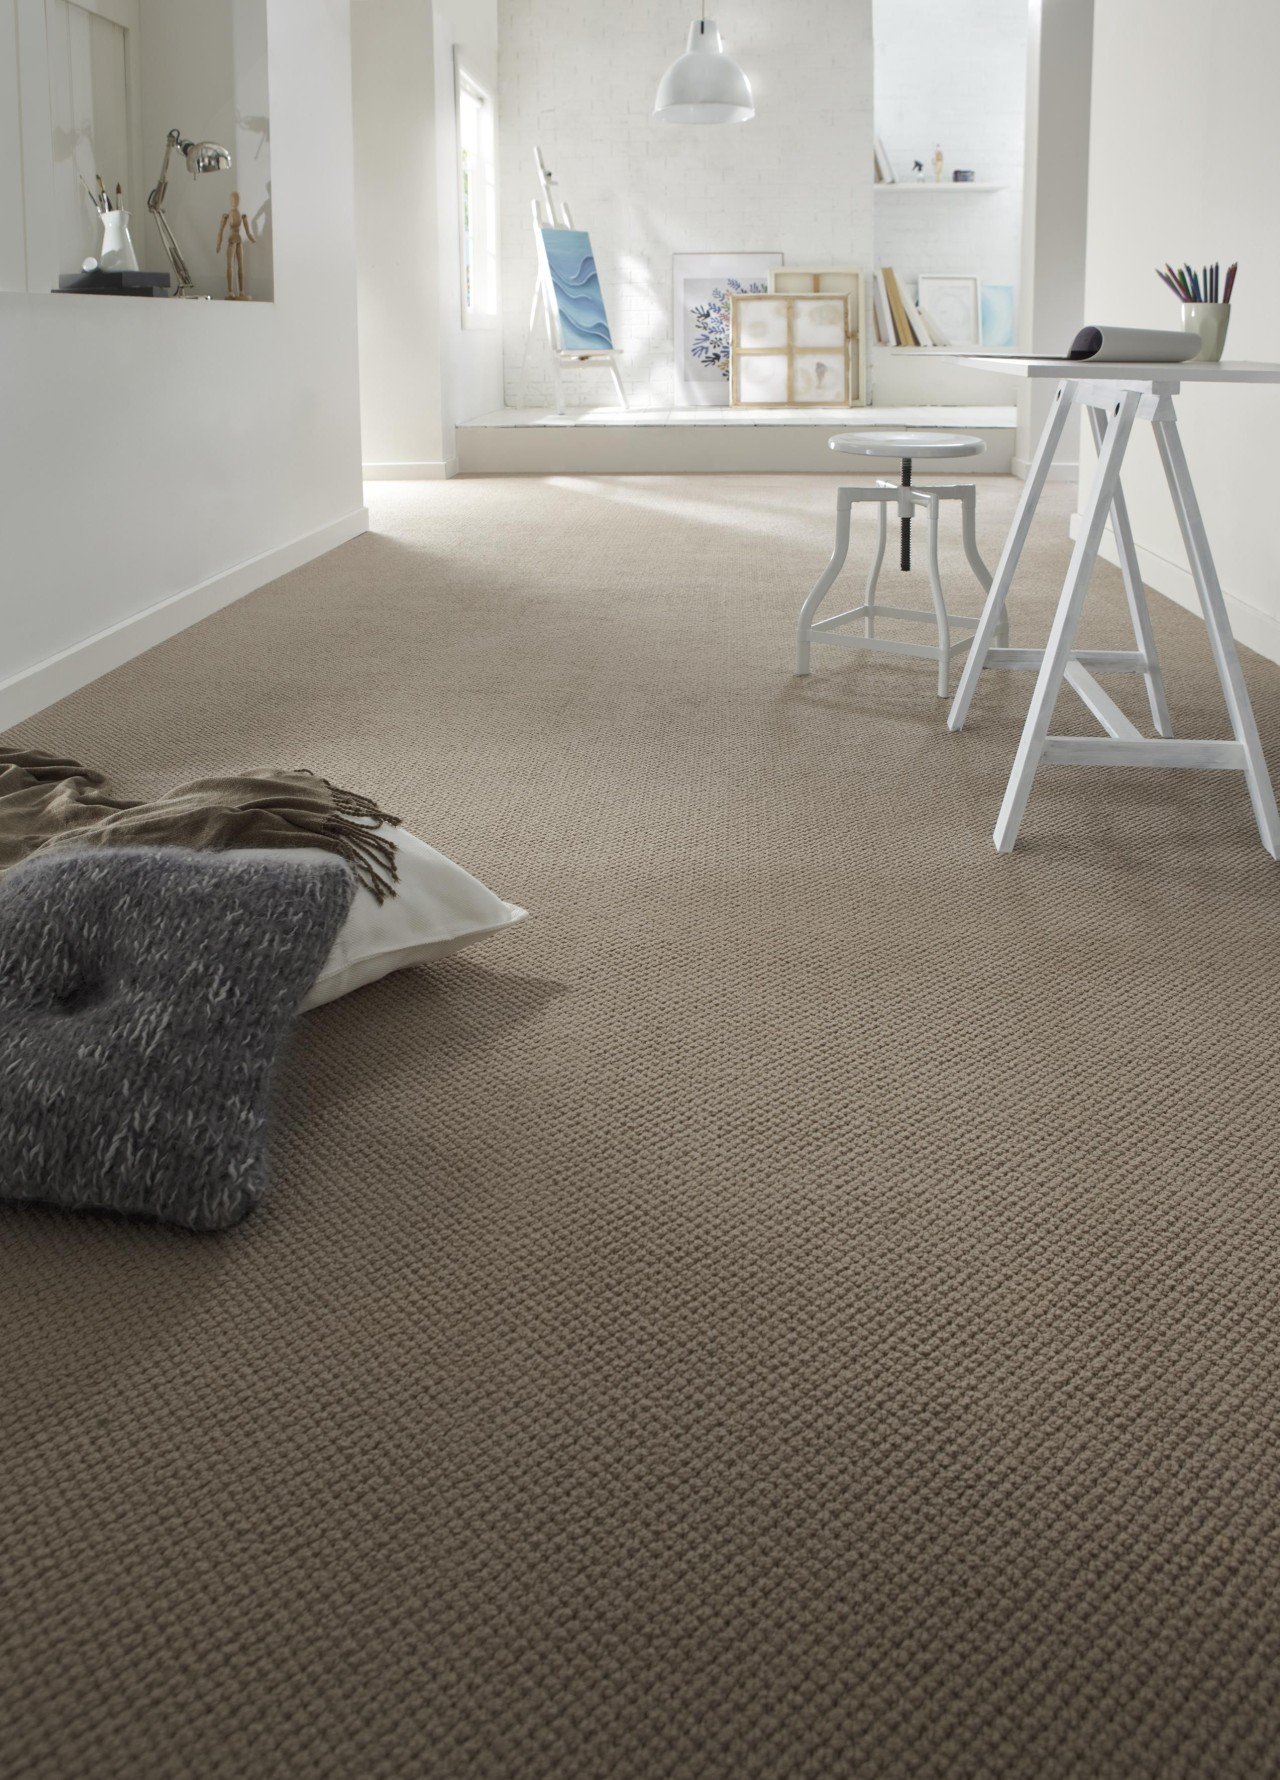 Heaps of carpets - carpet | floor | carpet, floor, flooring, hardwood, home, interior design, laminate flooring, living room, property, tile, wood, wood flooring, gray